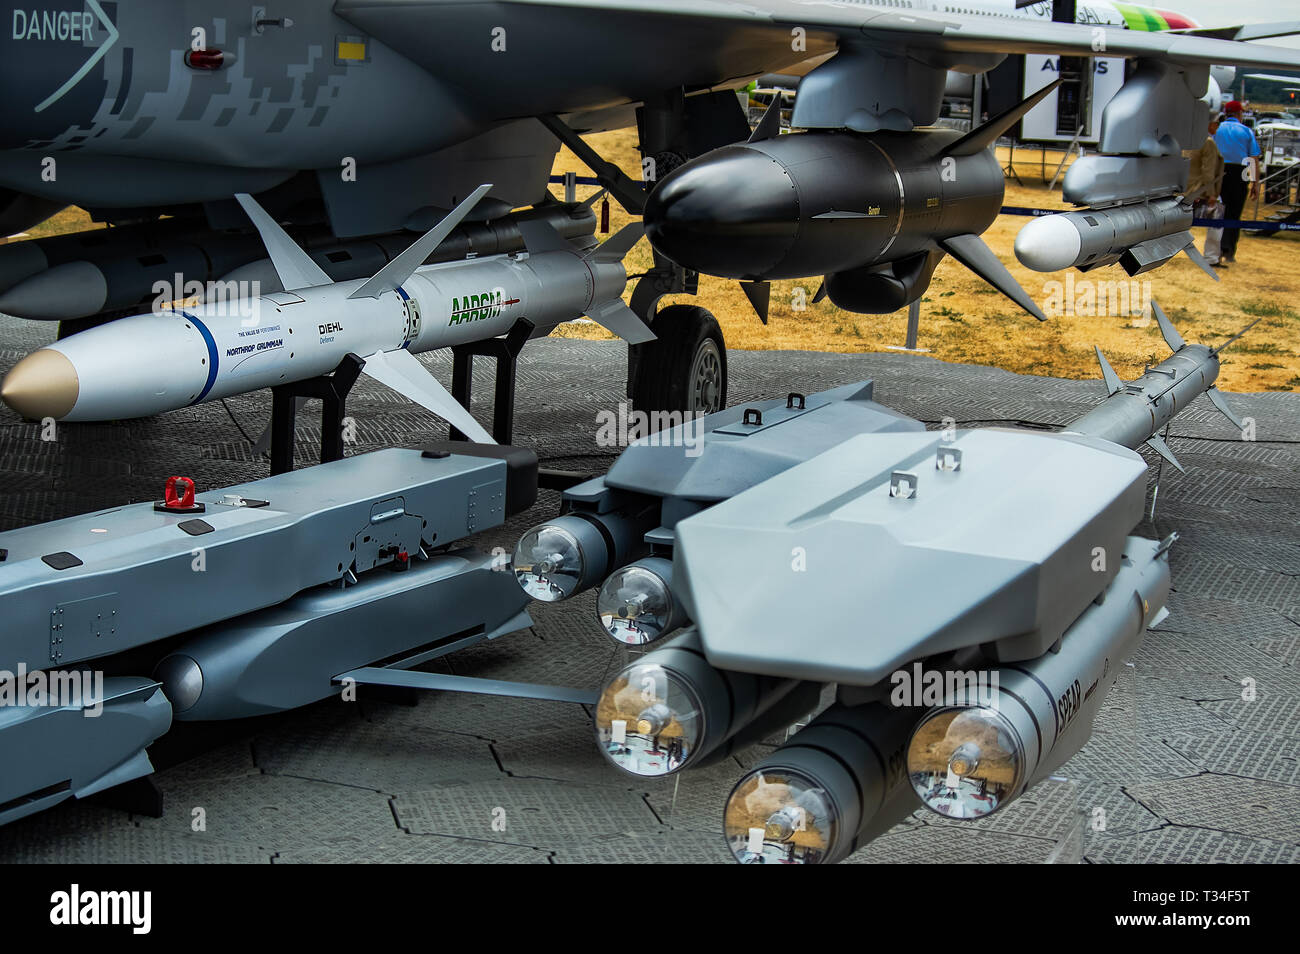 A collection of missiles / armaments on static display at Farnborough air show 2018 - Stock Image